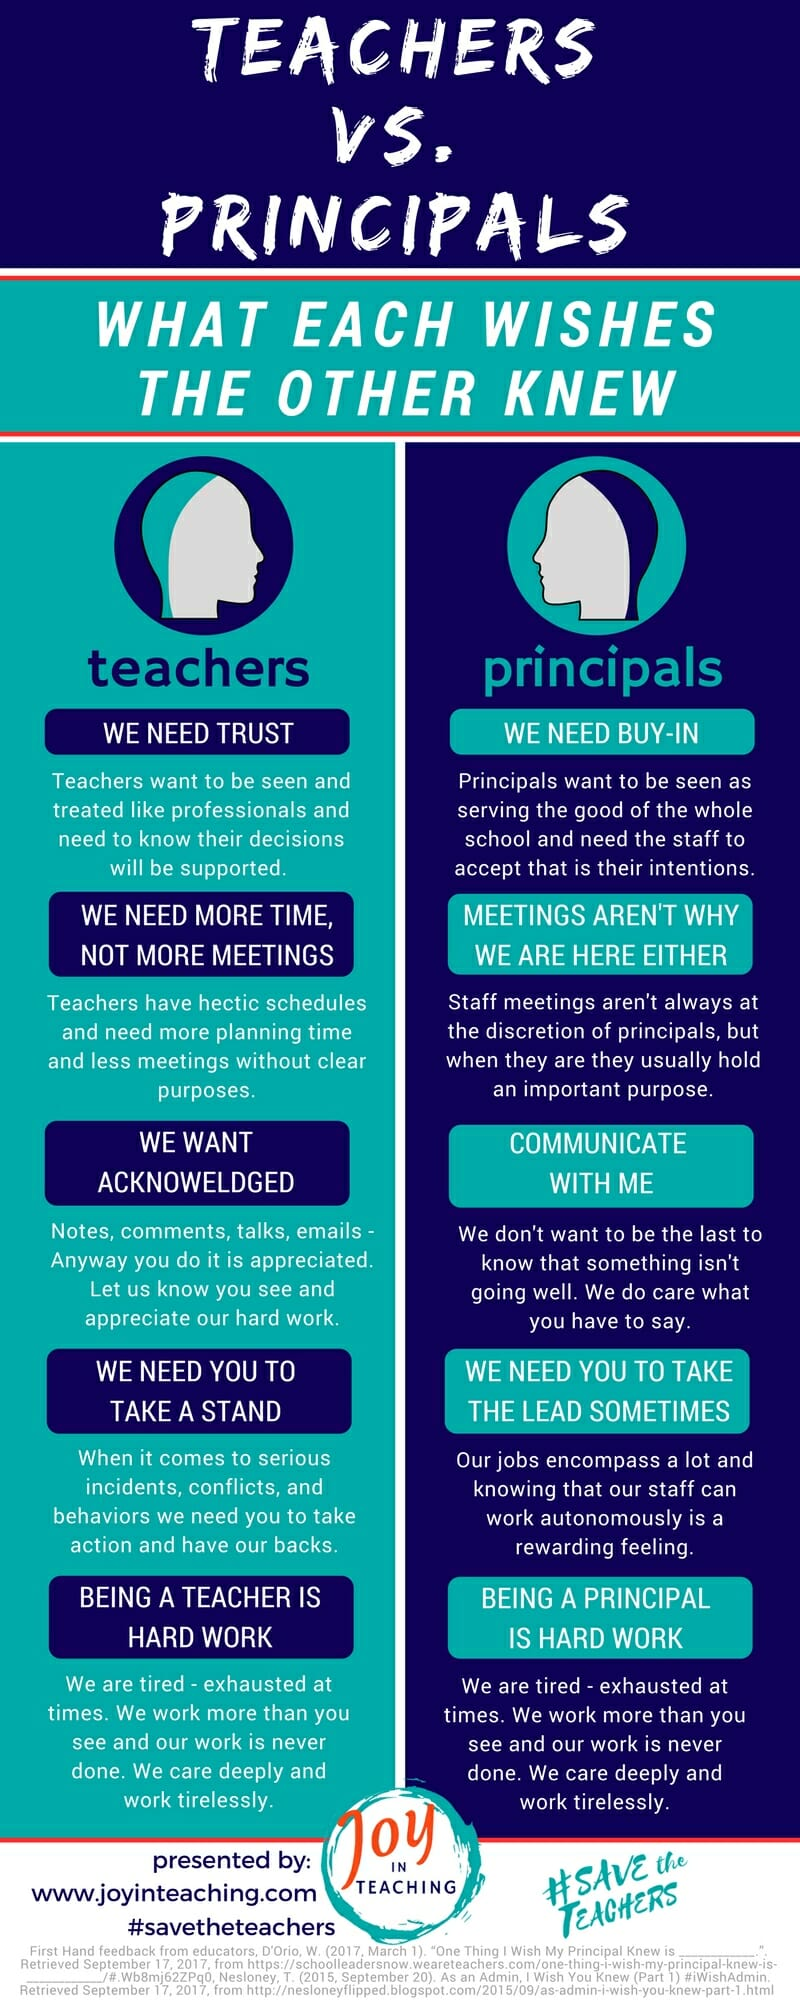 Teachers vs. Principals